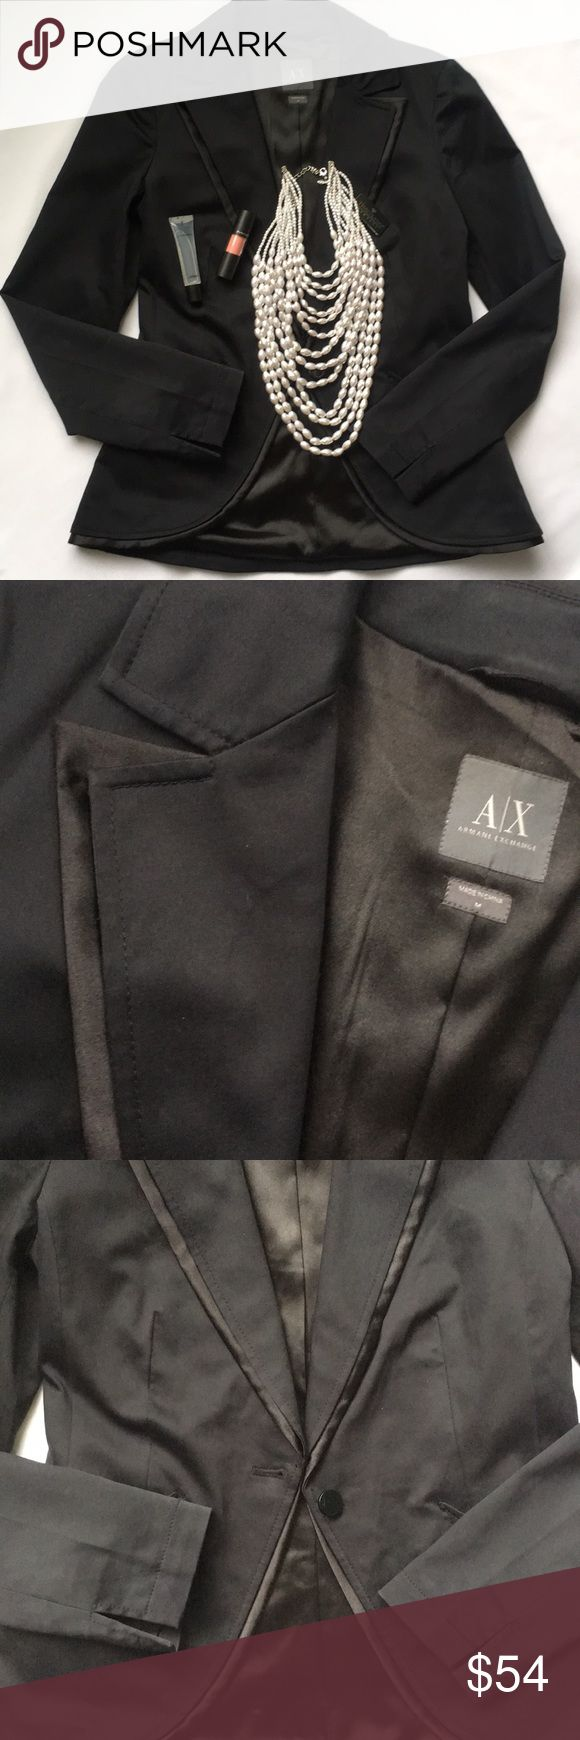 A/X Armani Exchange jacket Accentuates the female silhouette. Rock as formal wear or pair with black leggings for an evening out. Fitted, dark navy with subtle black layers around collar and jacket bottom. Sized medium but fits like a 6 to me. In excellent condition. A/X Armani Exchange Jackets & Coats